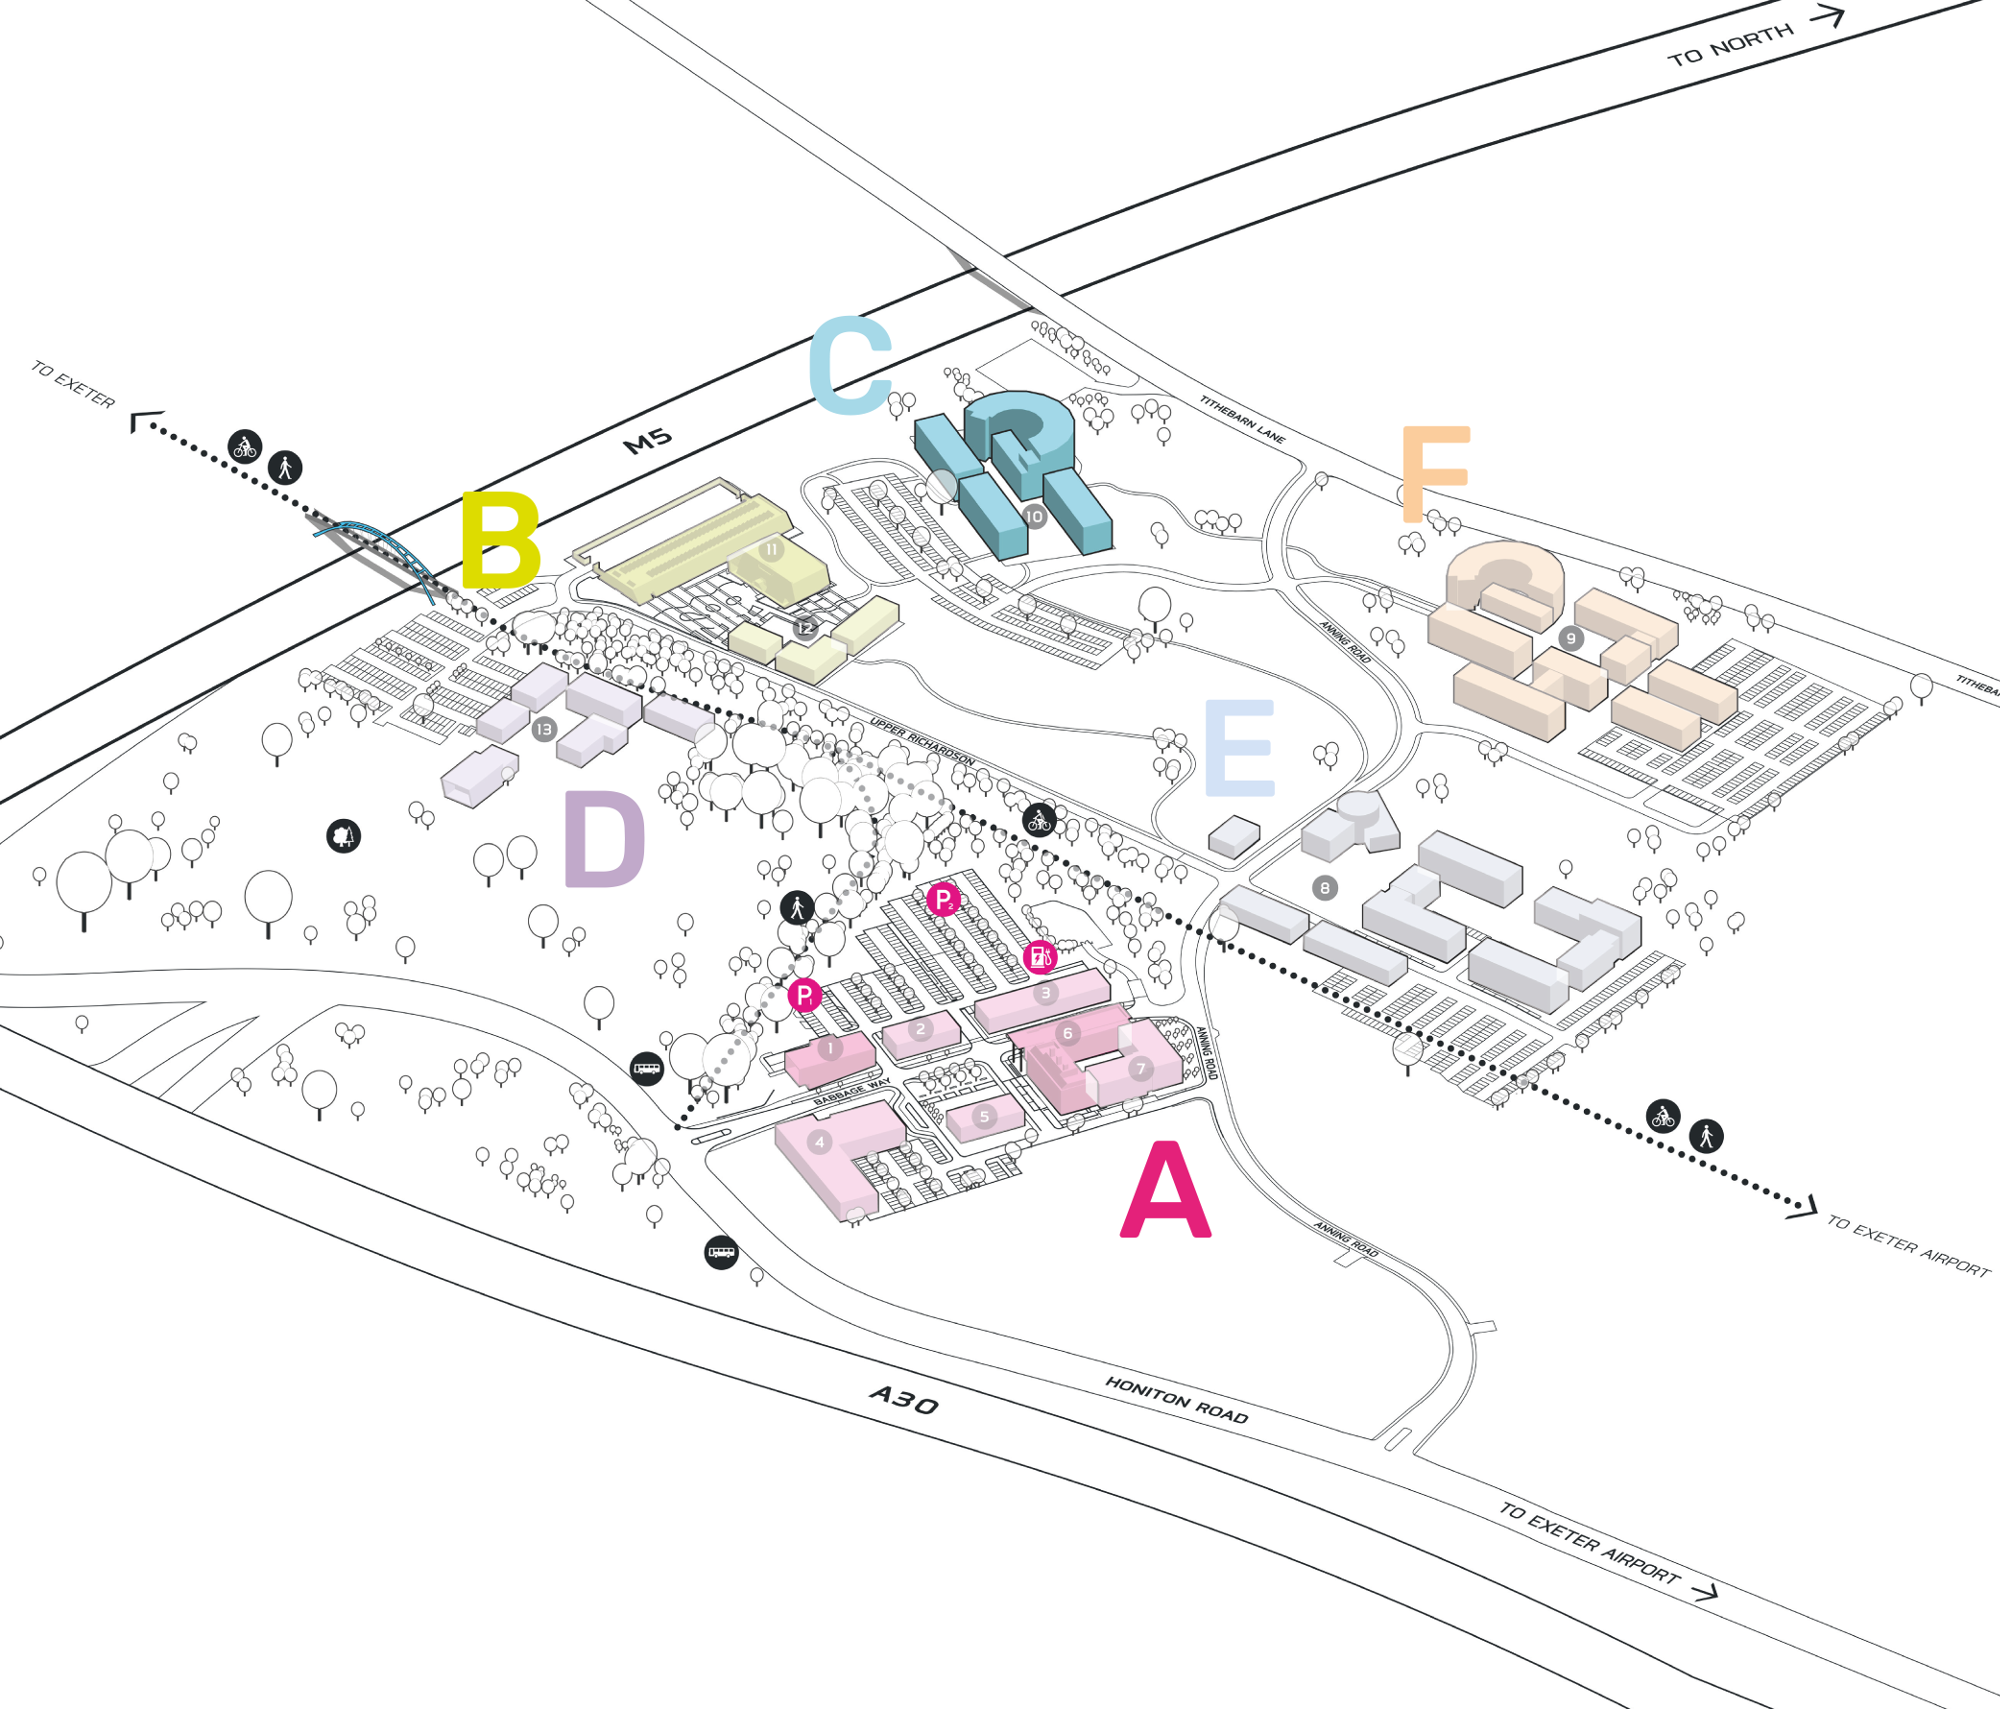 Park Plan highlighting cluster C